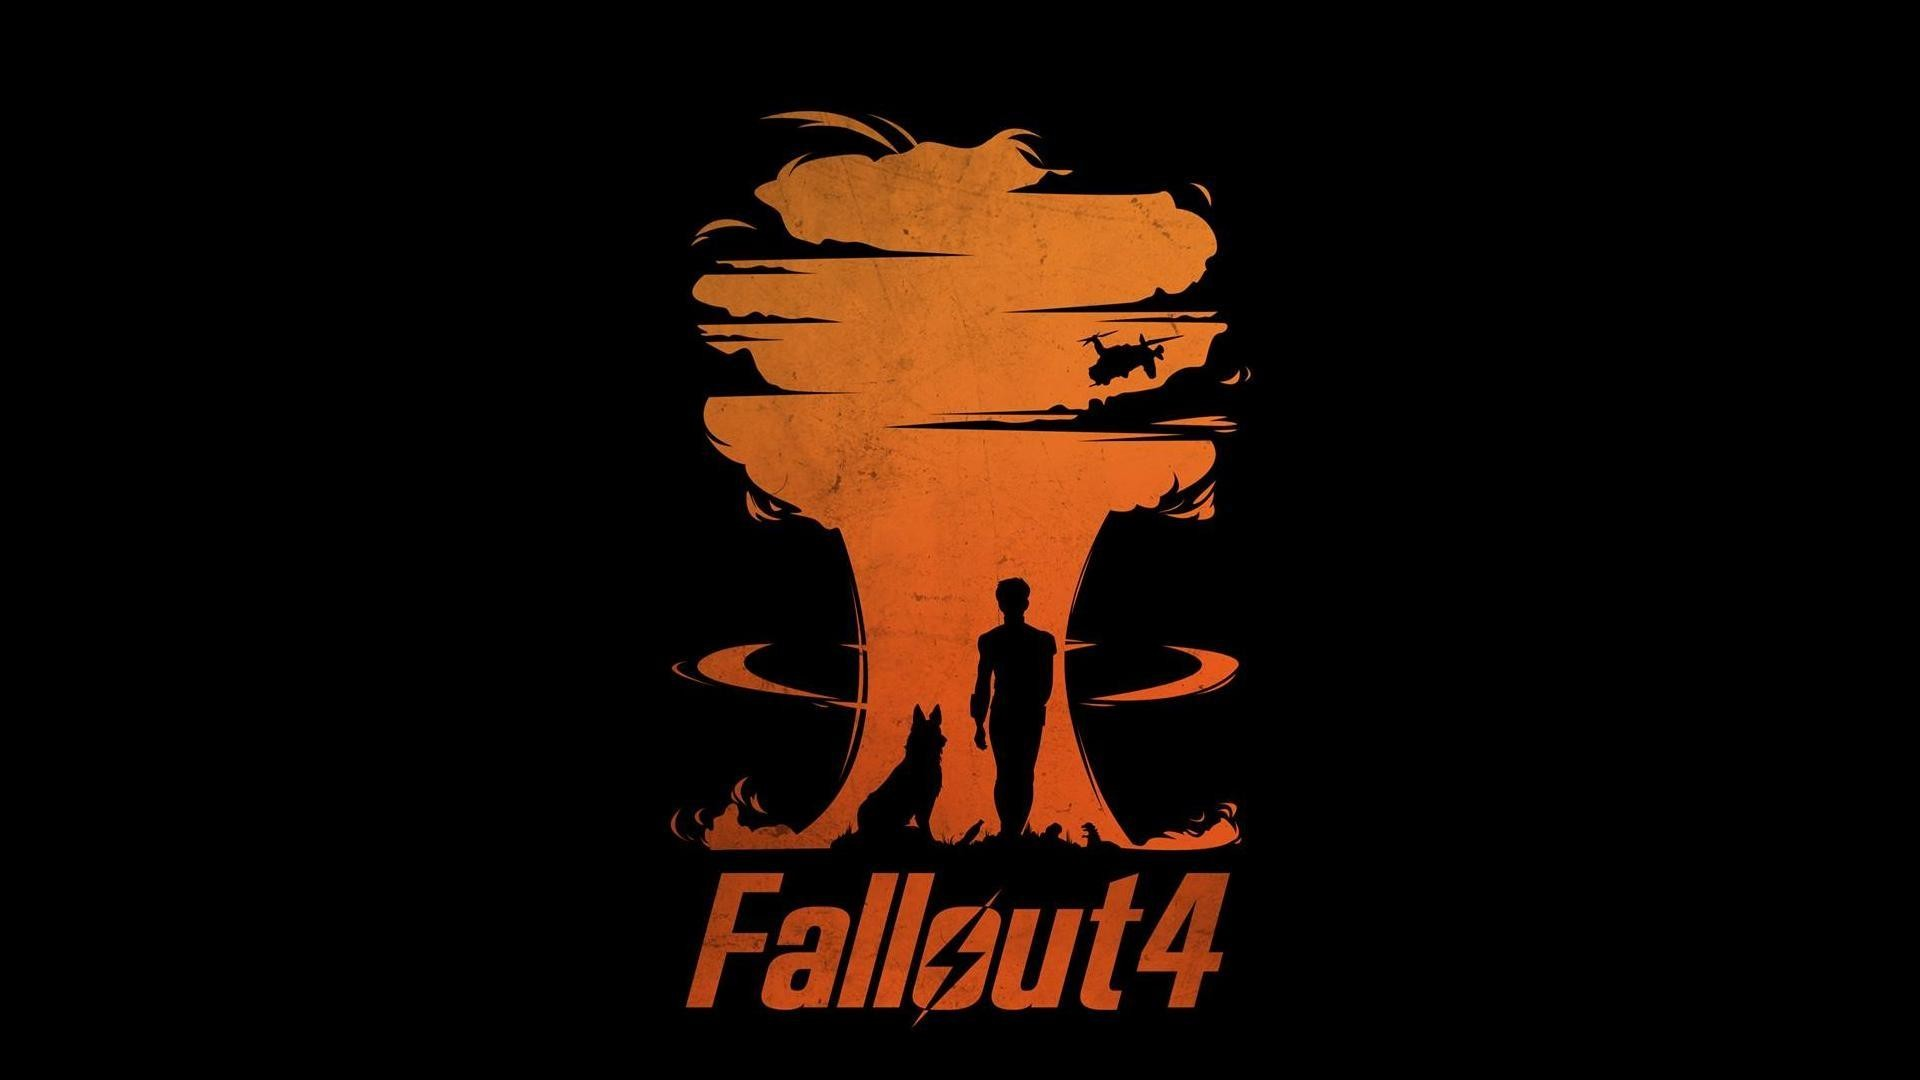 Fallout 4 Wallpaper Phone 61 Images